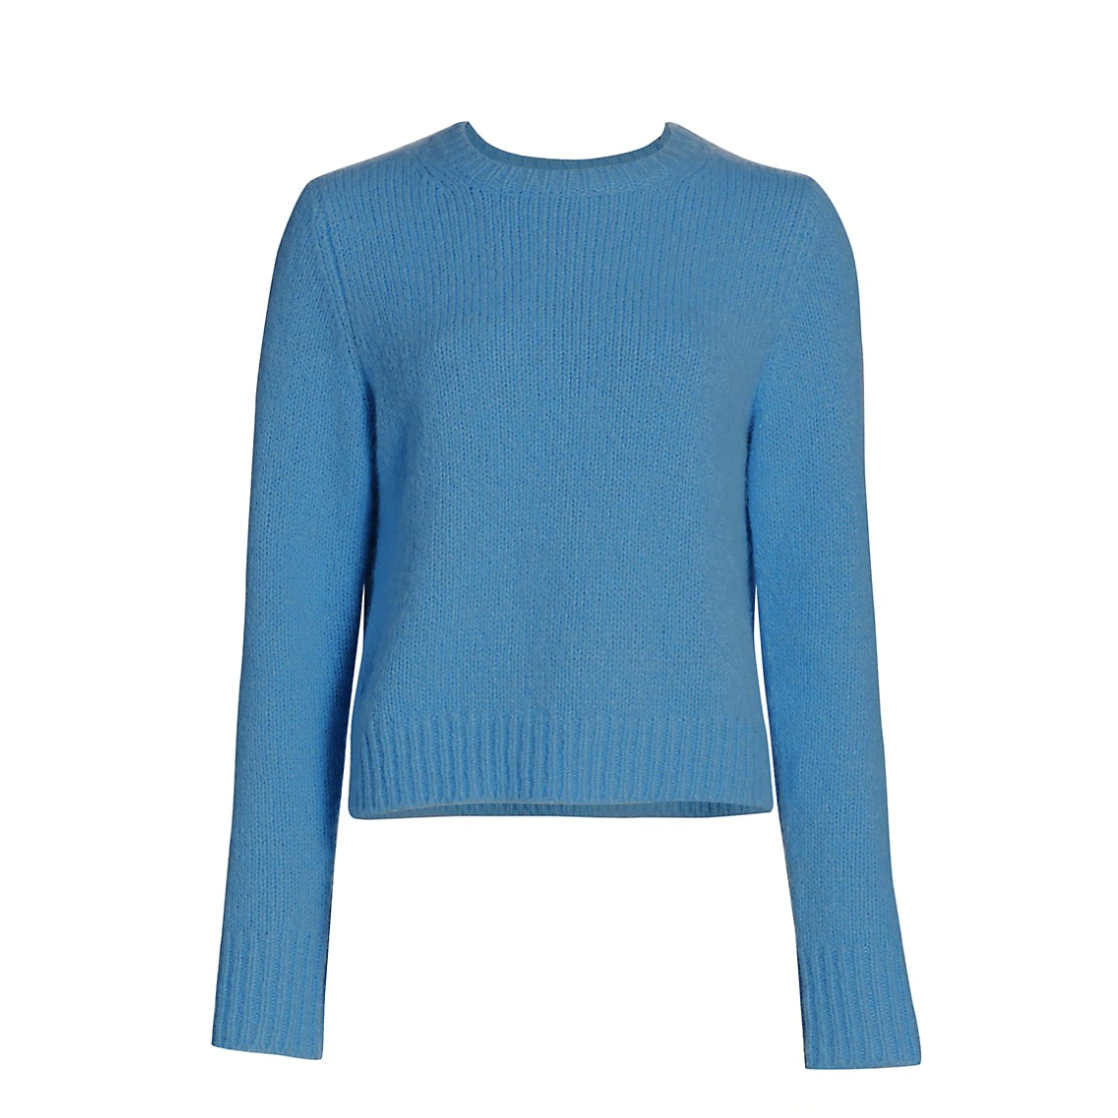 A.L.C. Blue Sweater